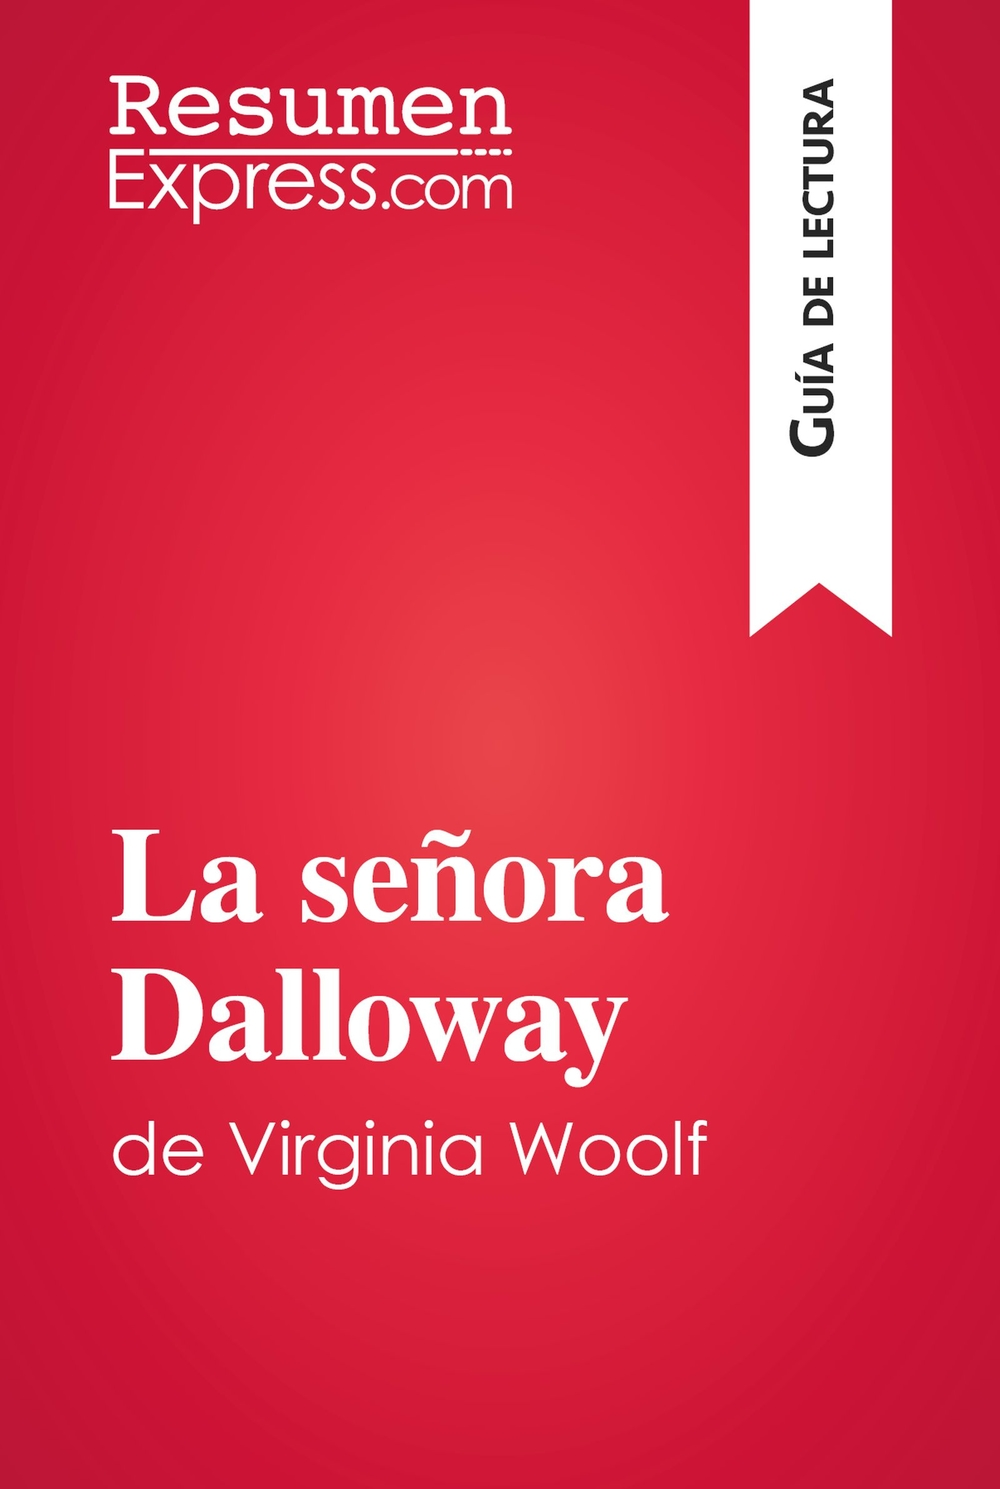 La señora Dalloway de Virginia Woolf (Guía de lectura)